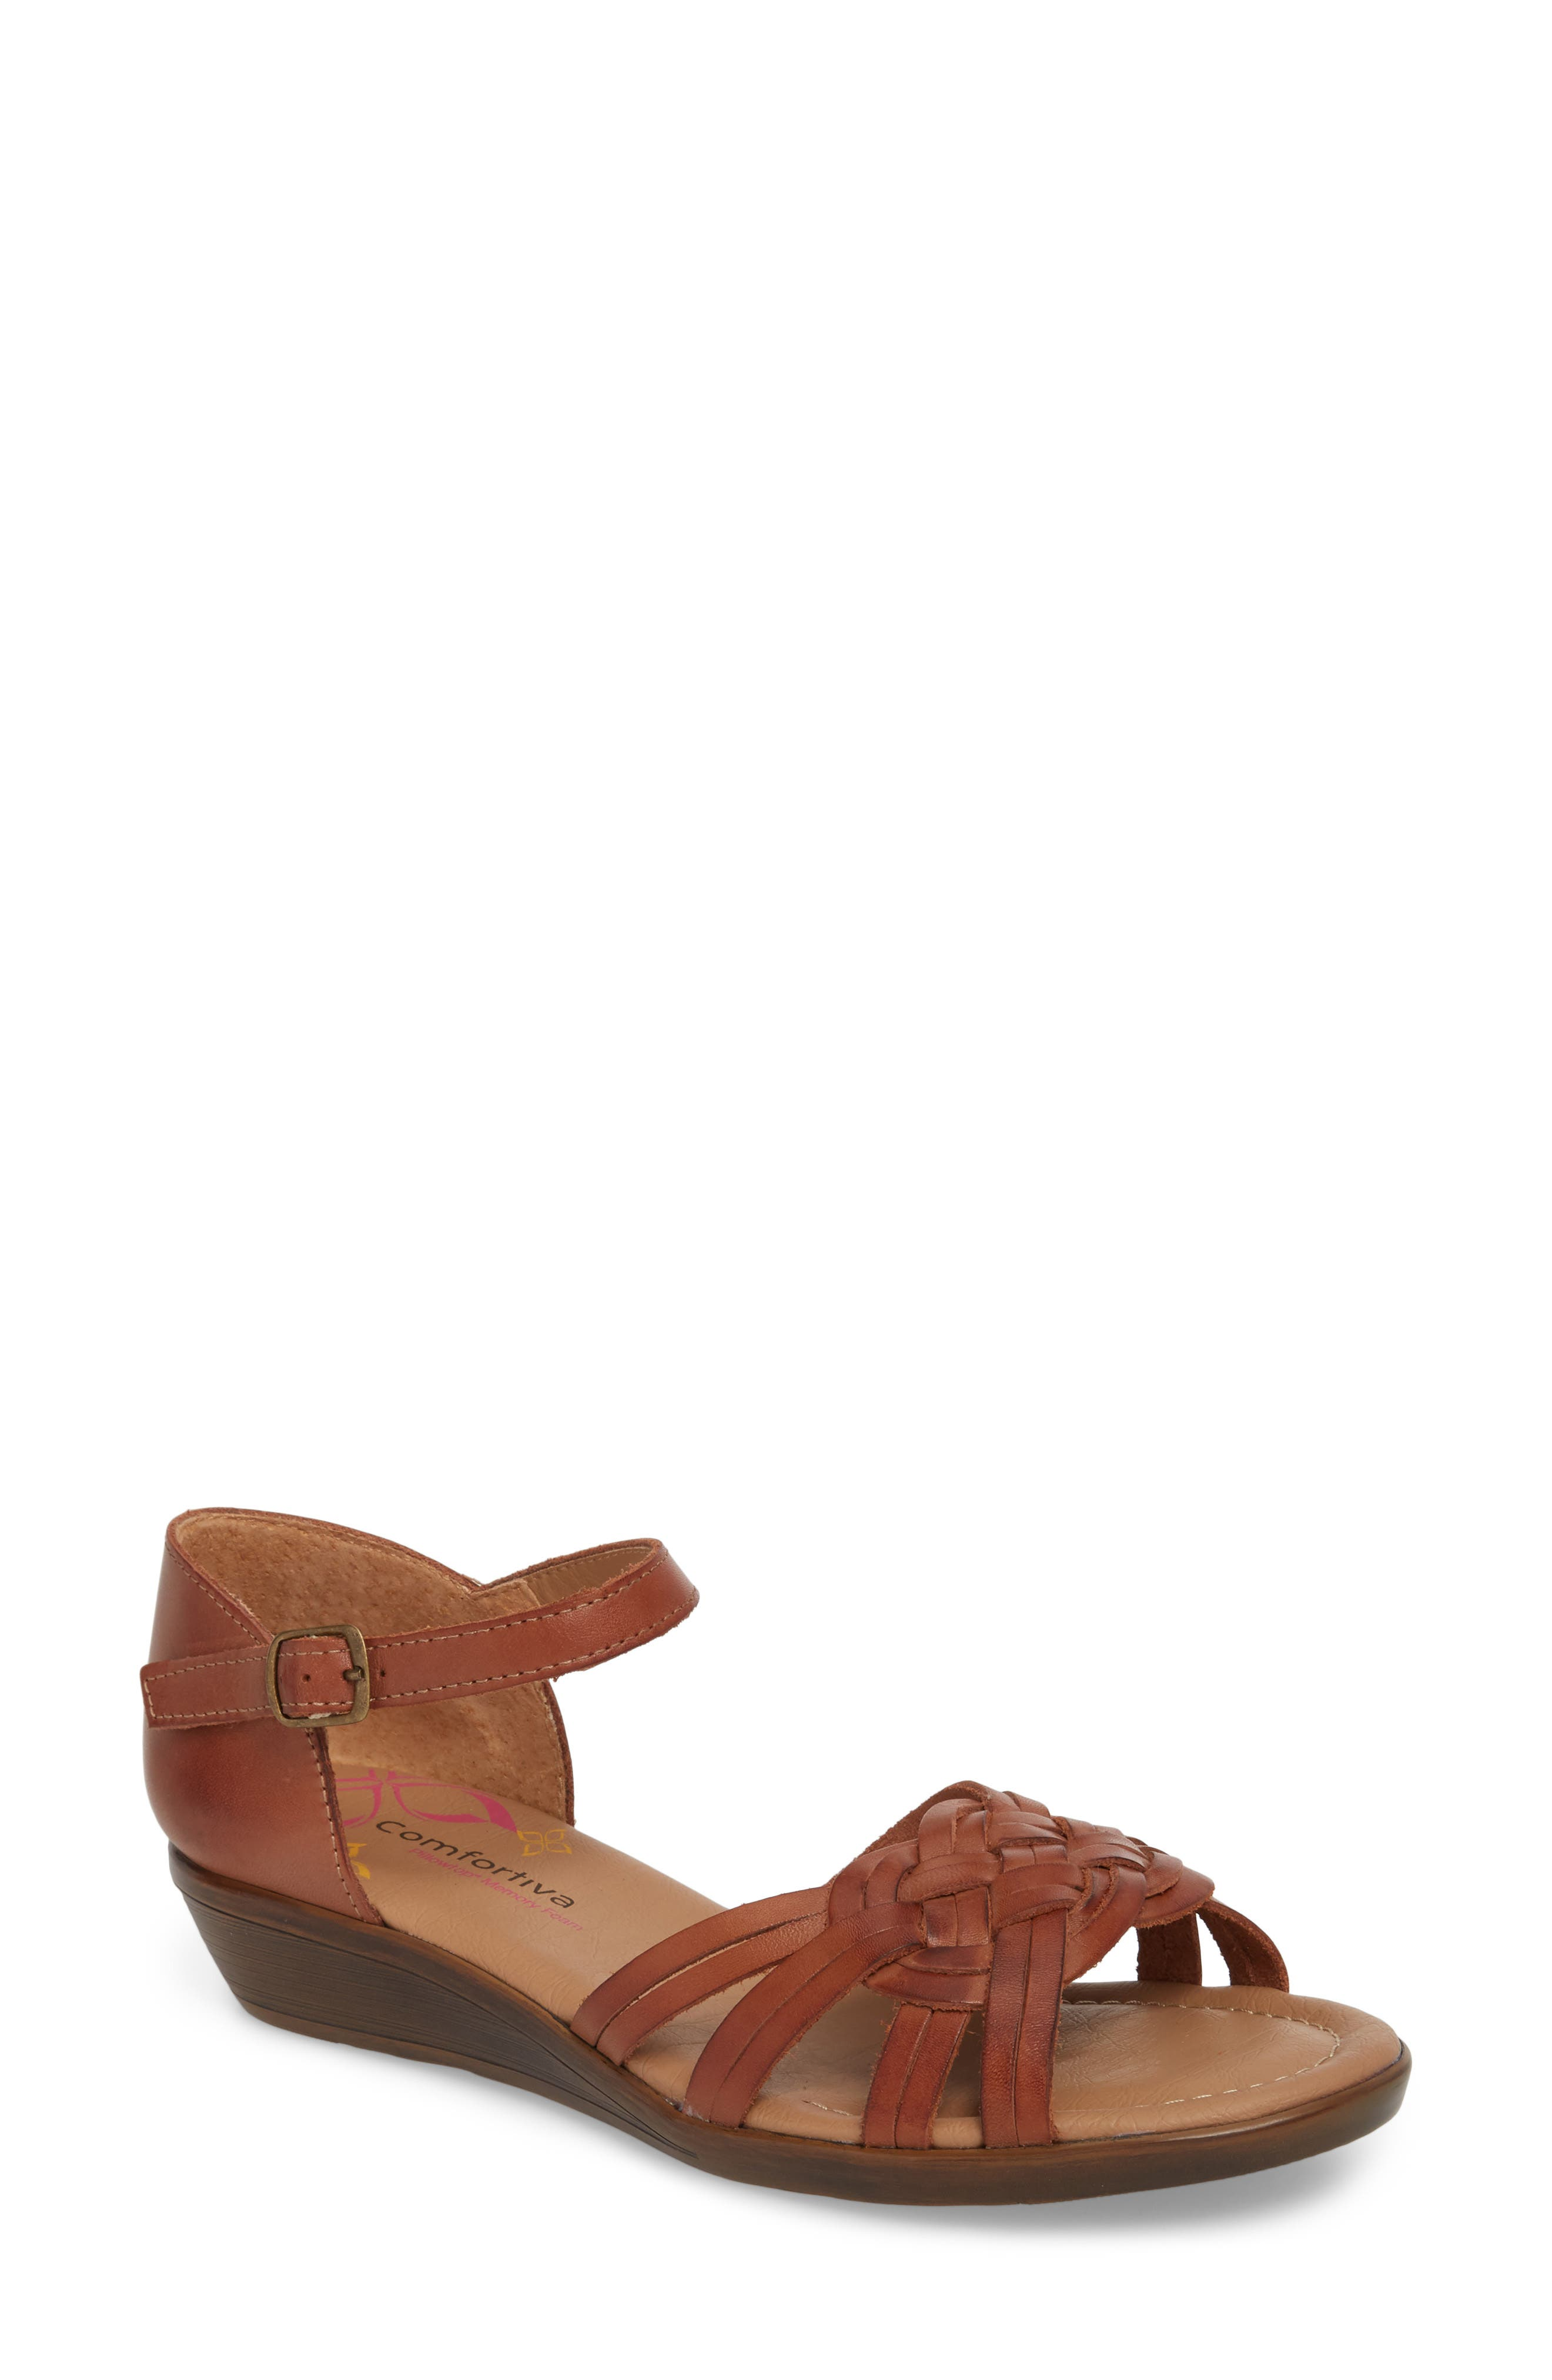 Fortune Sandal,                         Main,                         color, Rust Leather